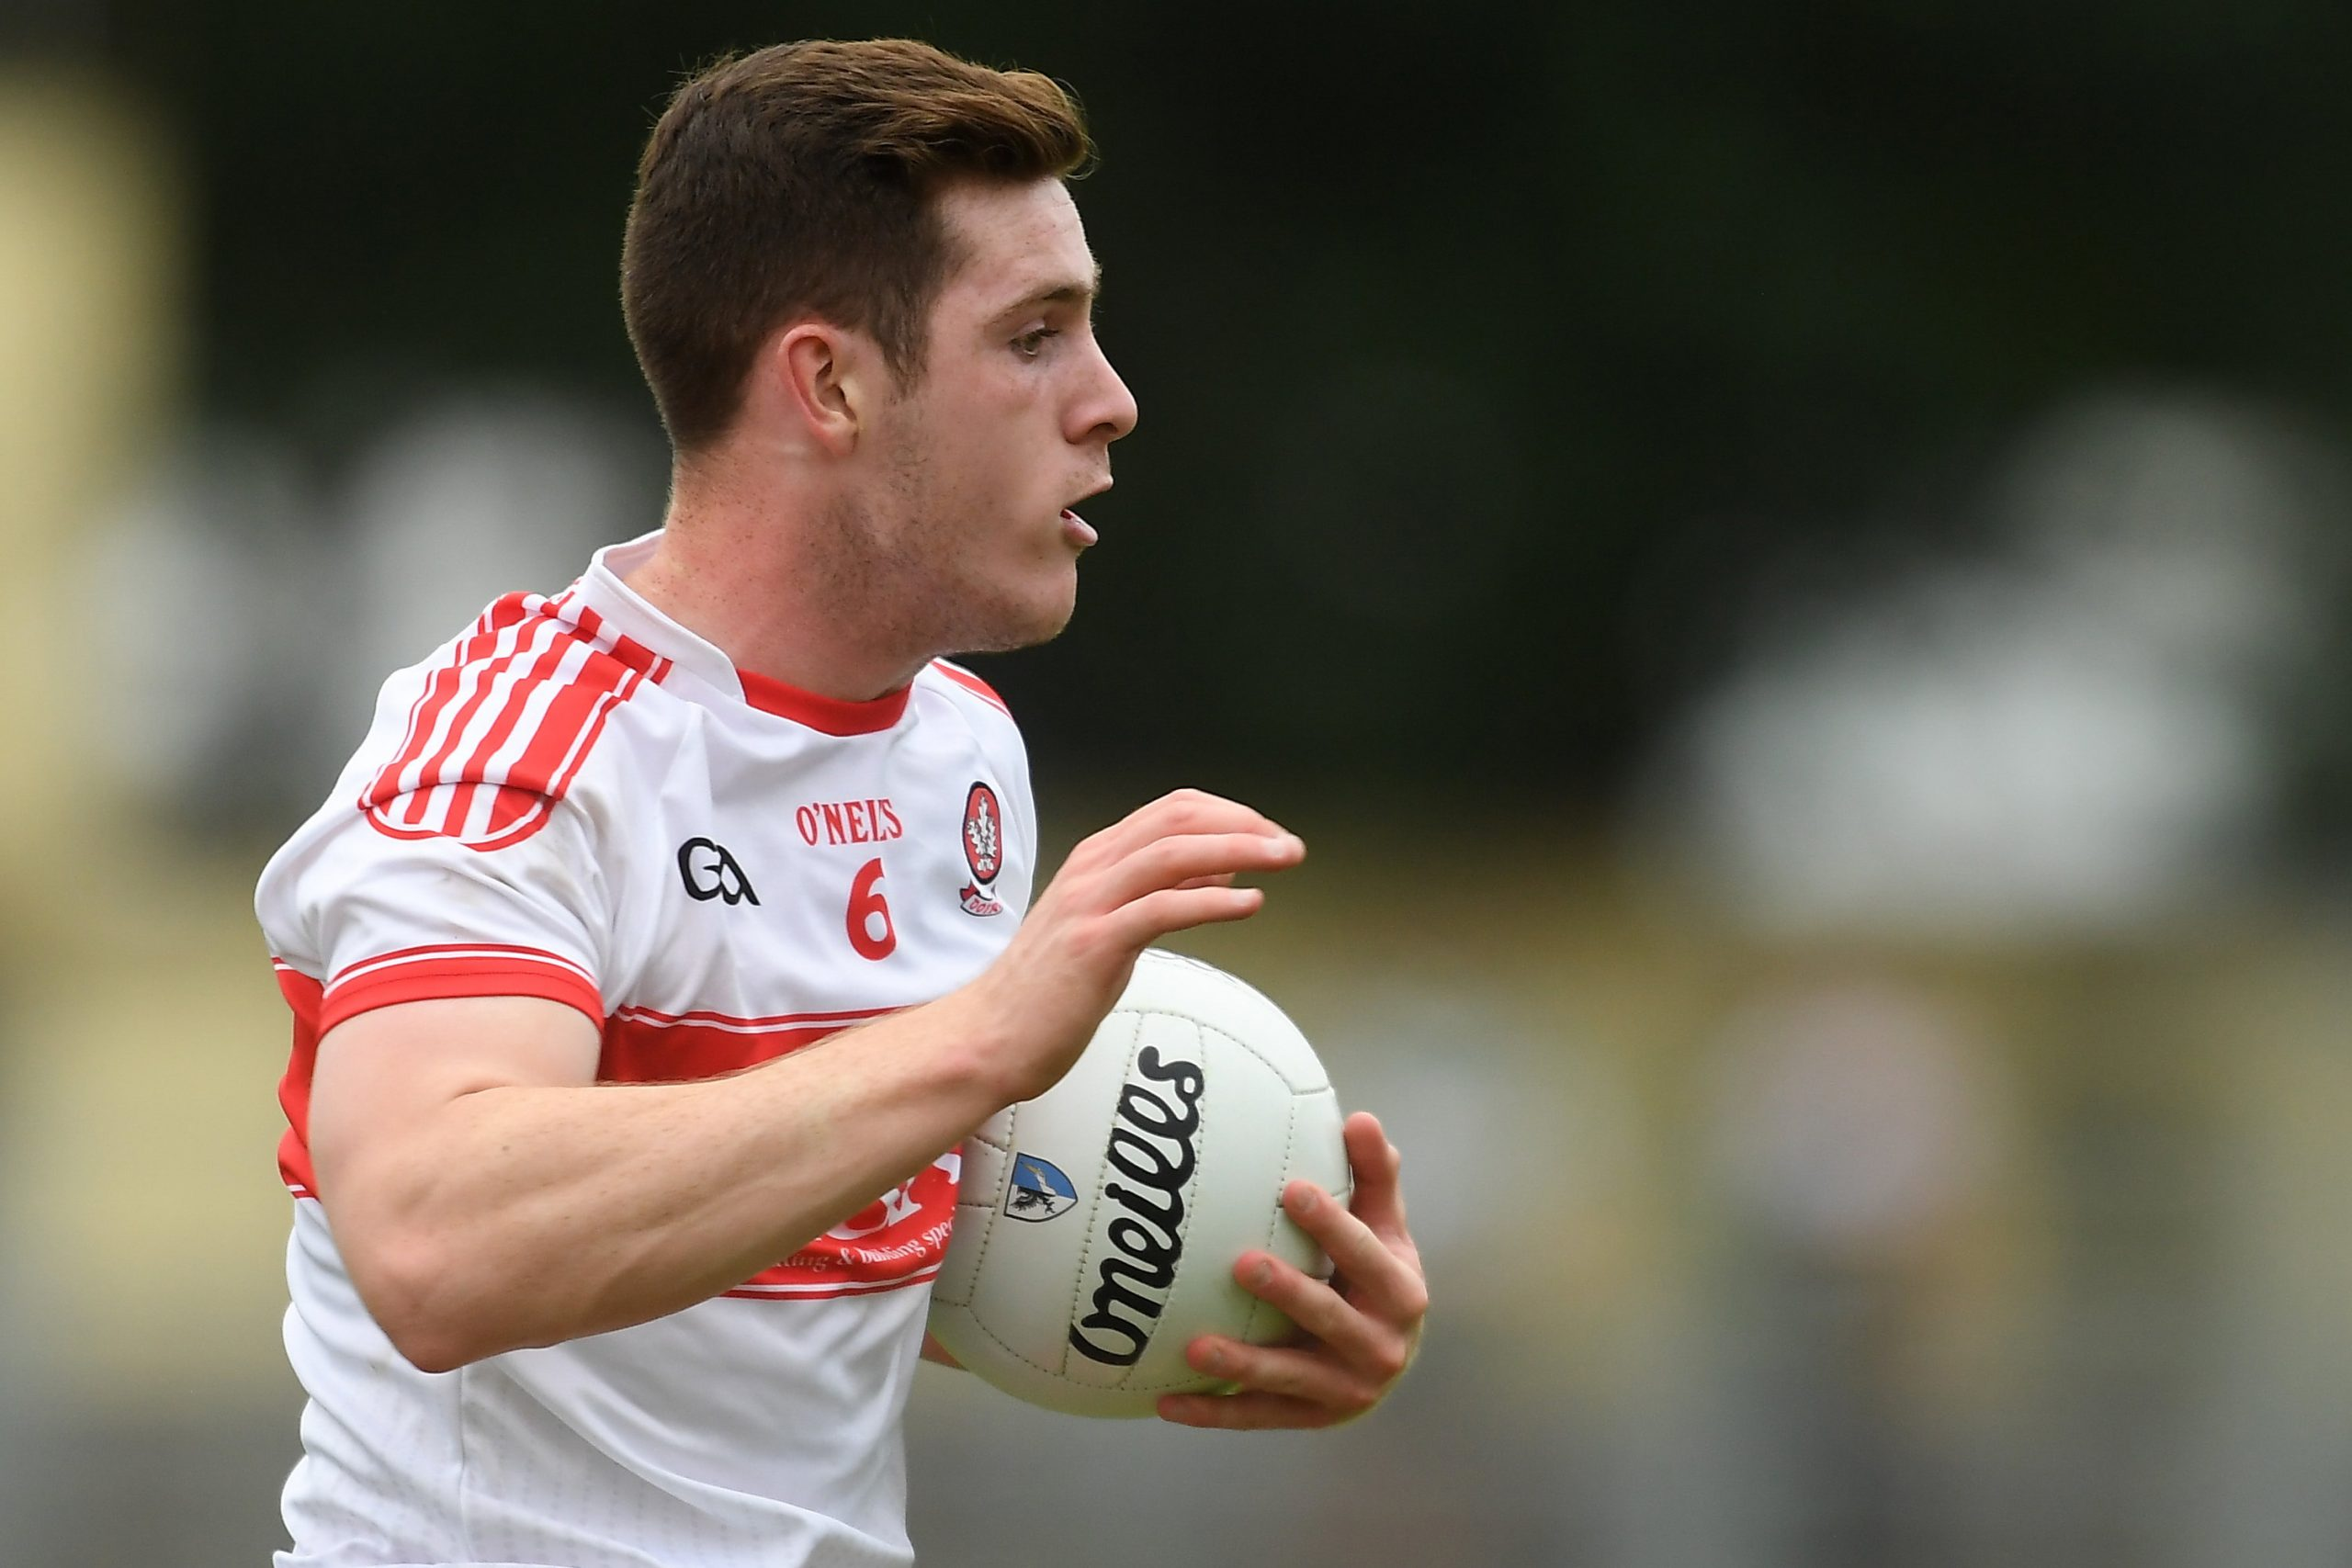 Derry launch stunning comeback to overcome Armagh